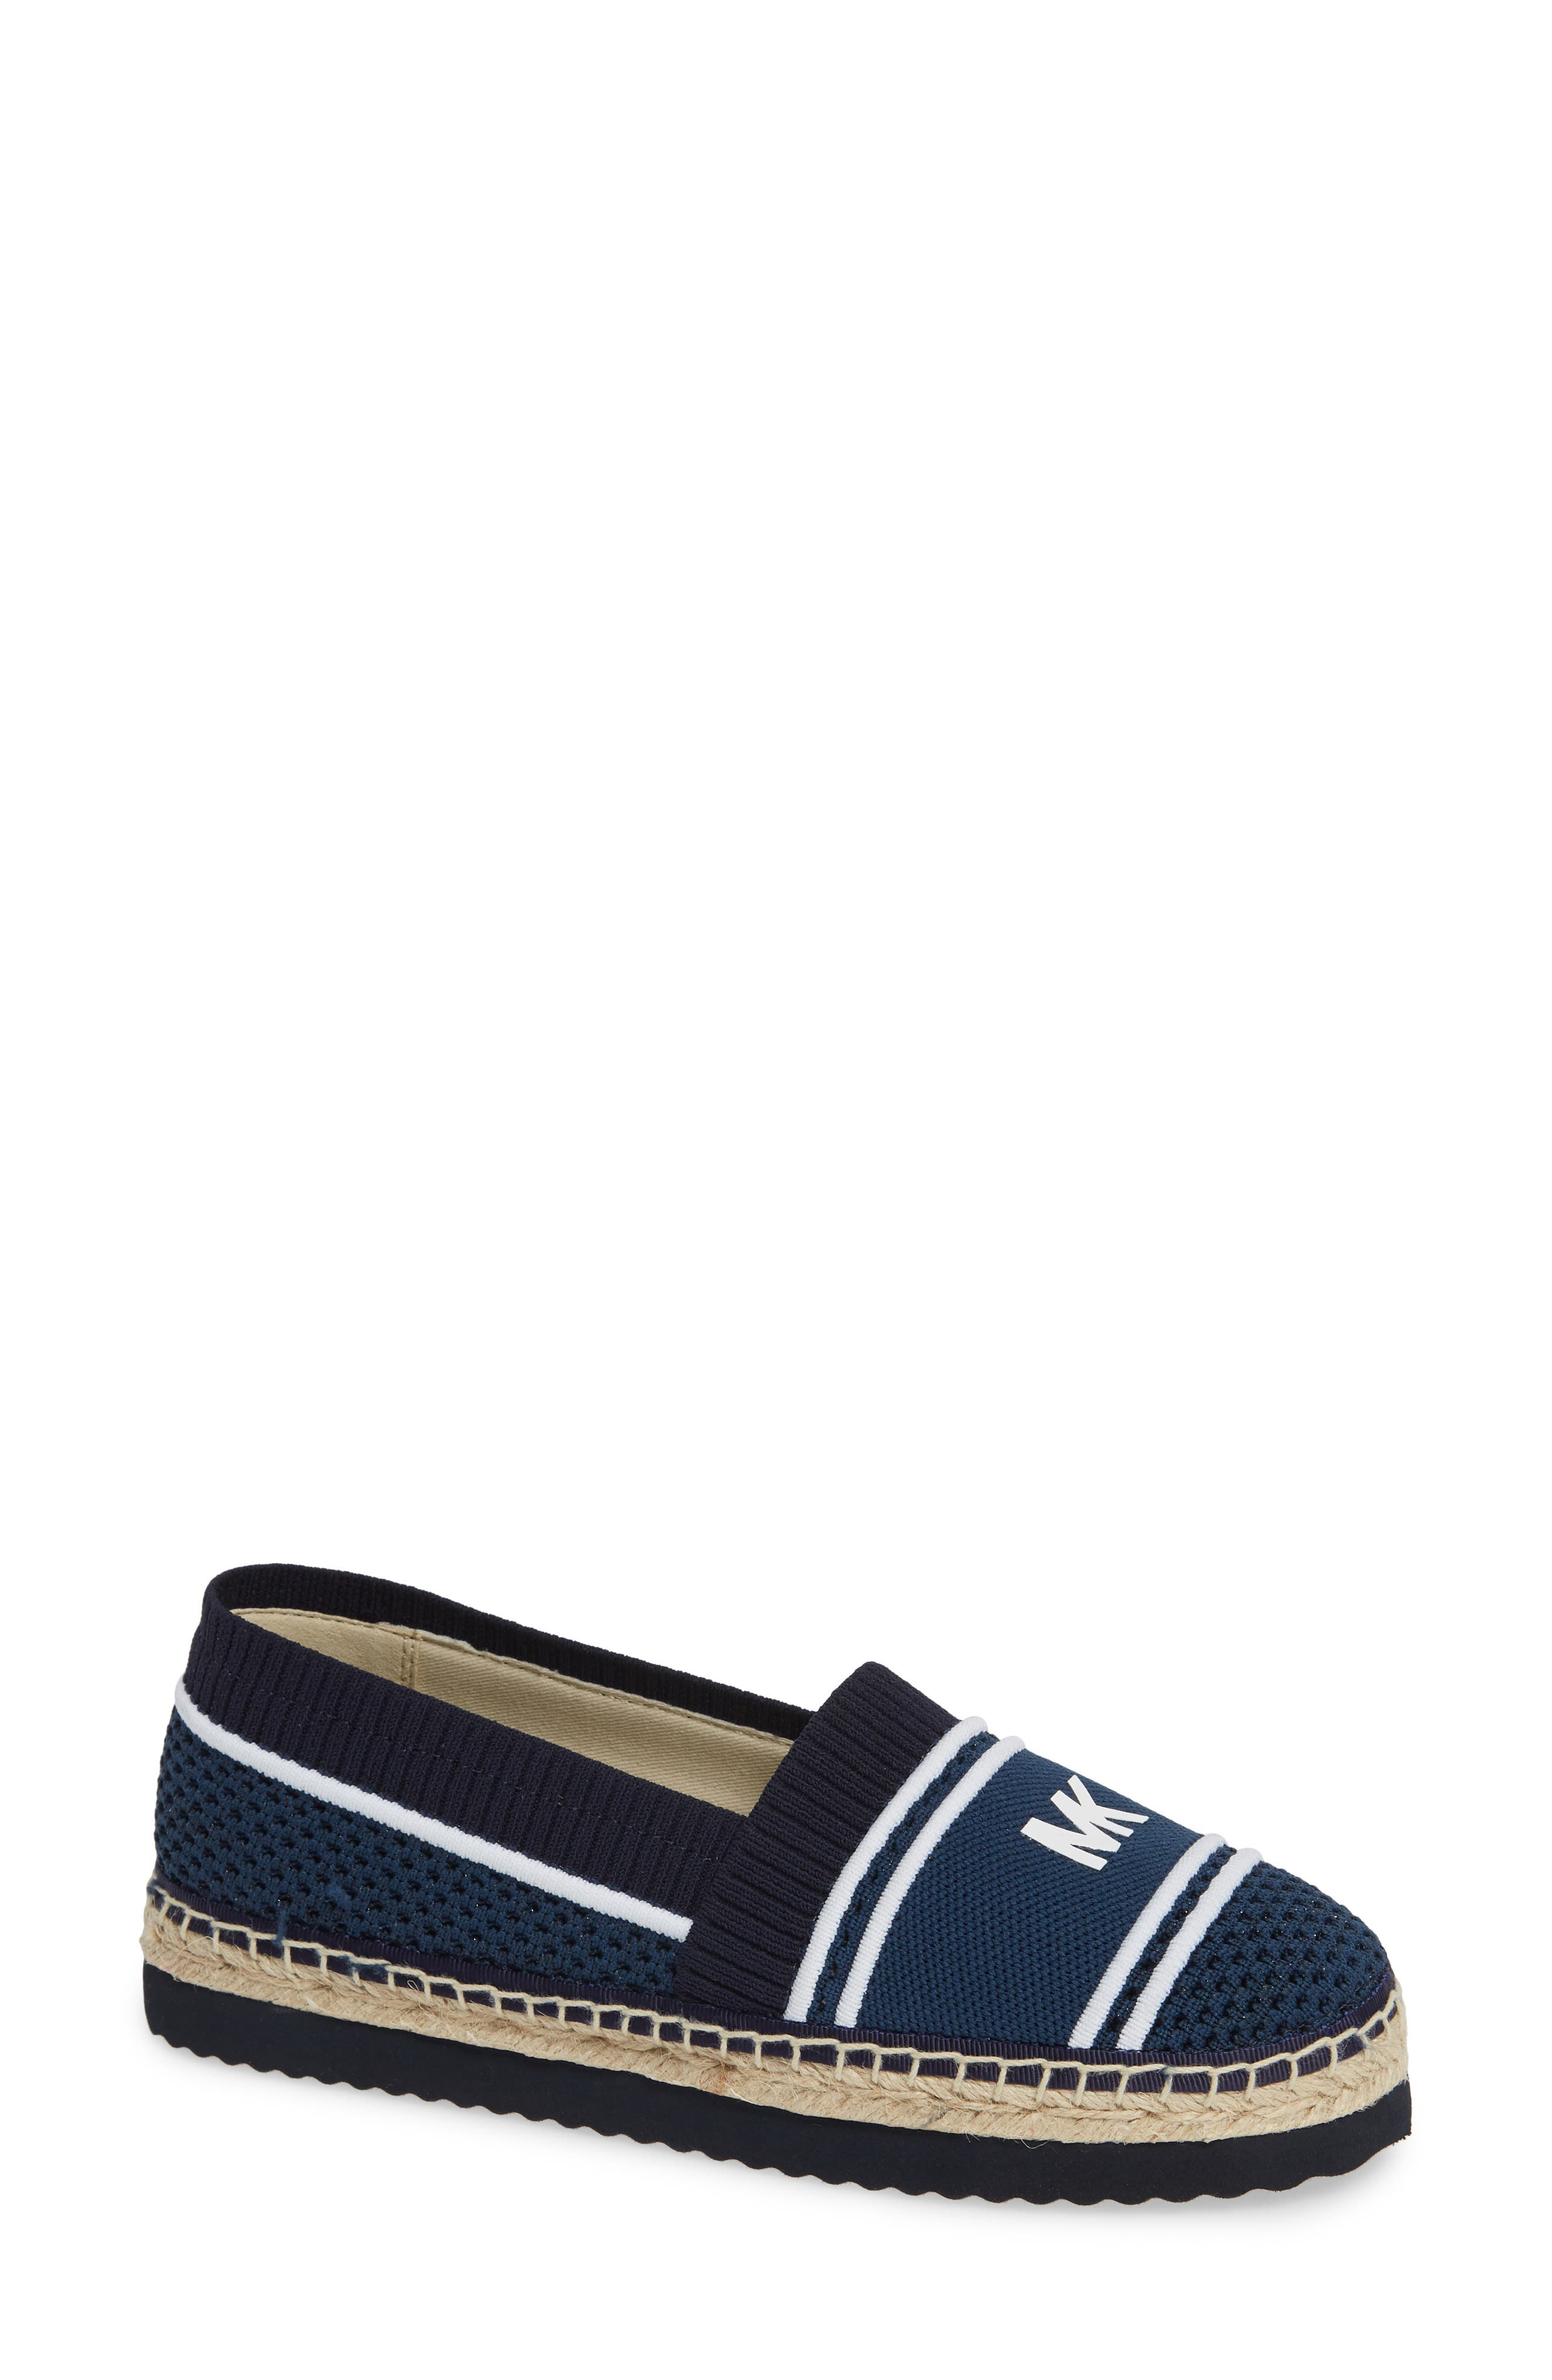 Raya Espadrille in Admiral Fabric